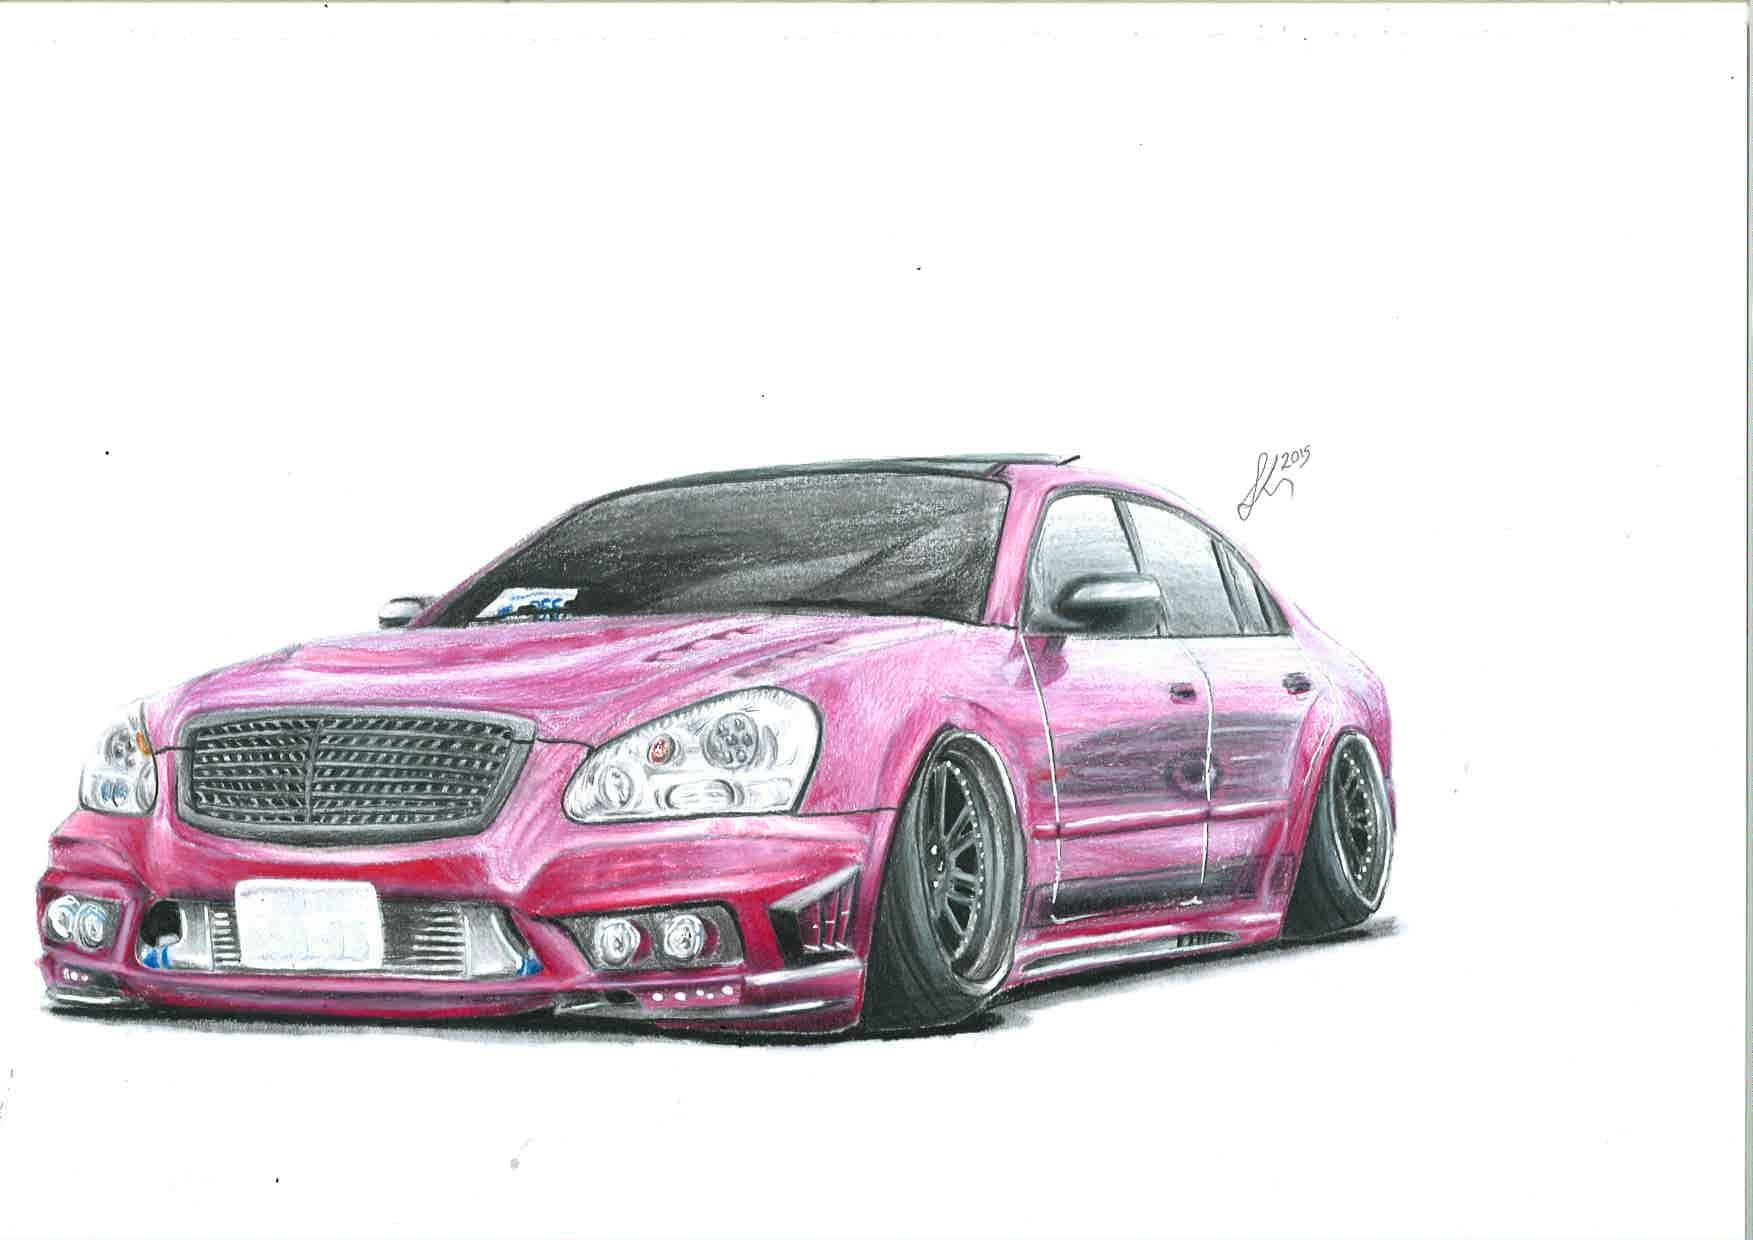 1753x1240 Hey! New On Here! Massive Fan Of Stanced Cars And Drawing Them